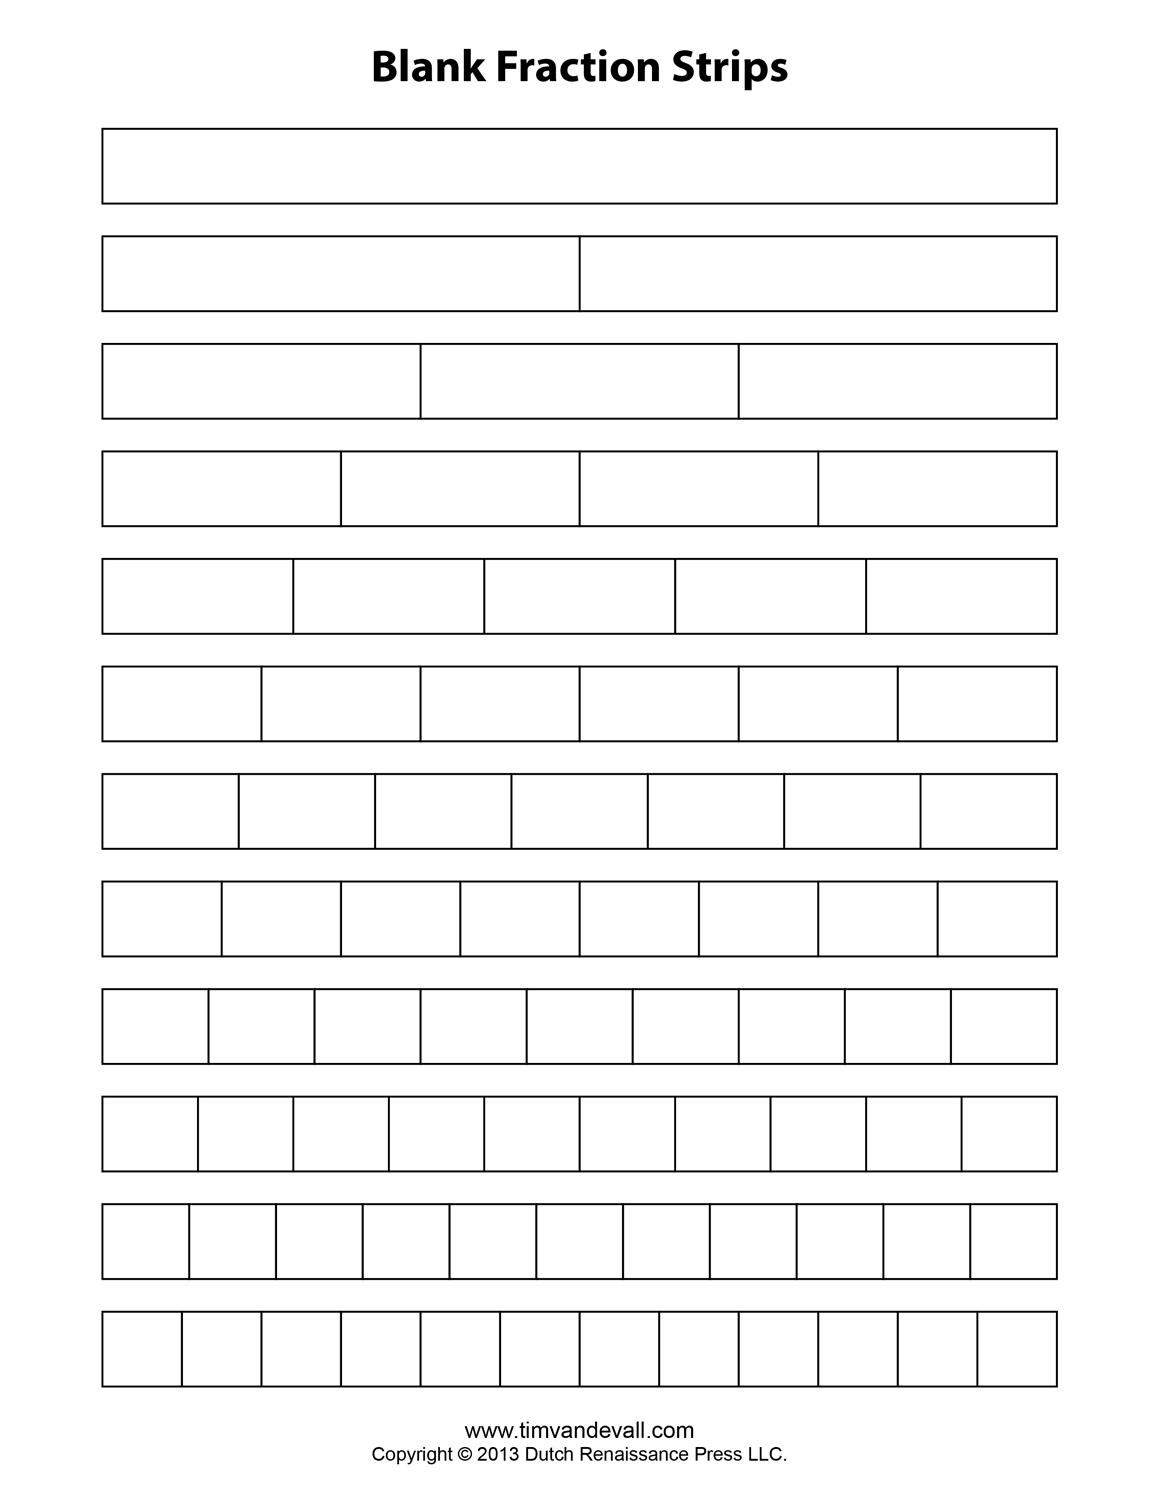 Fraction Strip Templates for Kids – School Math Printables